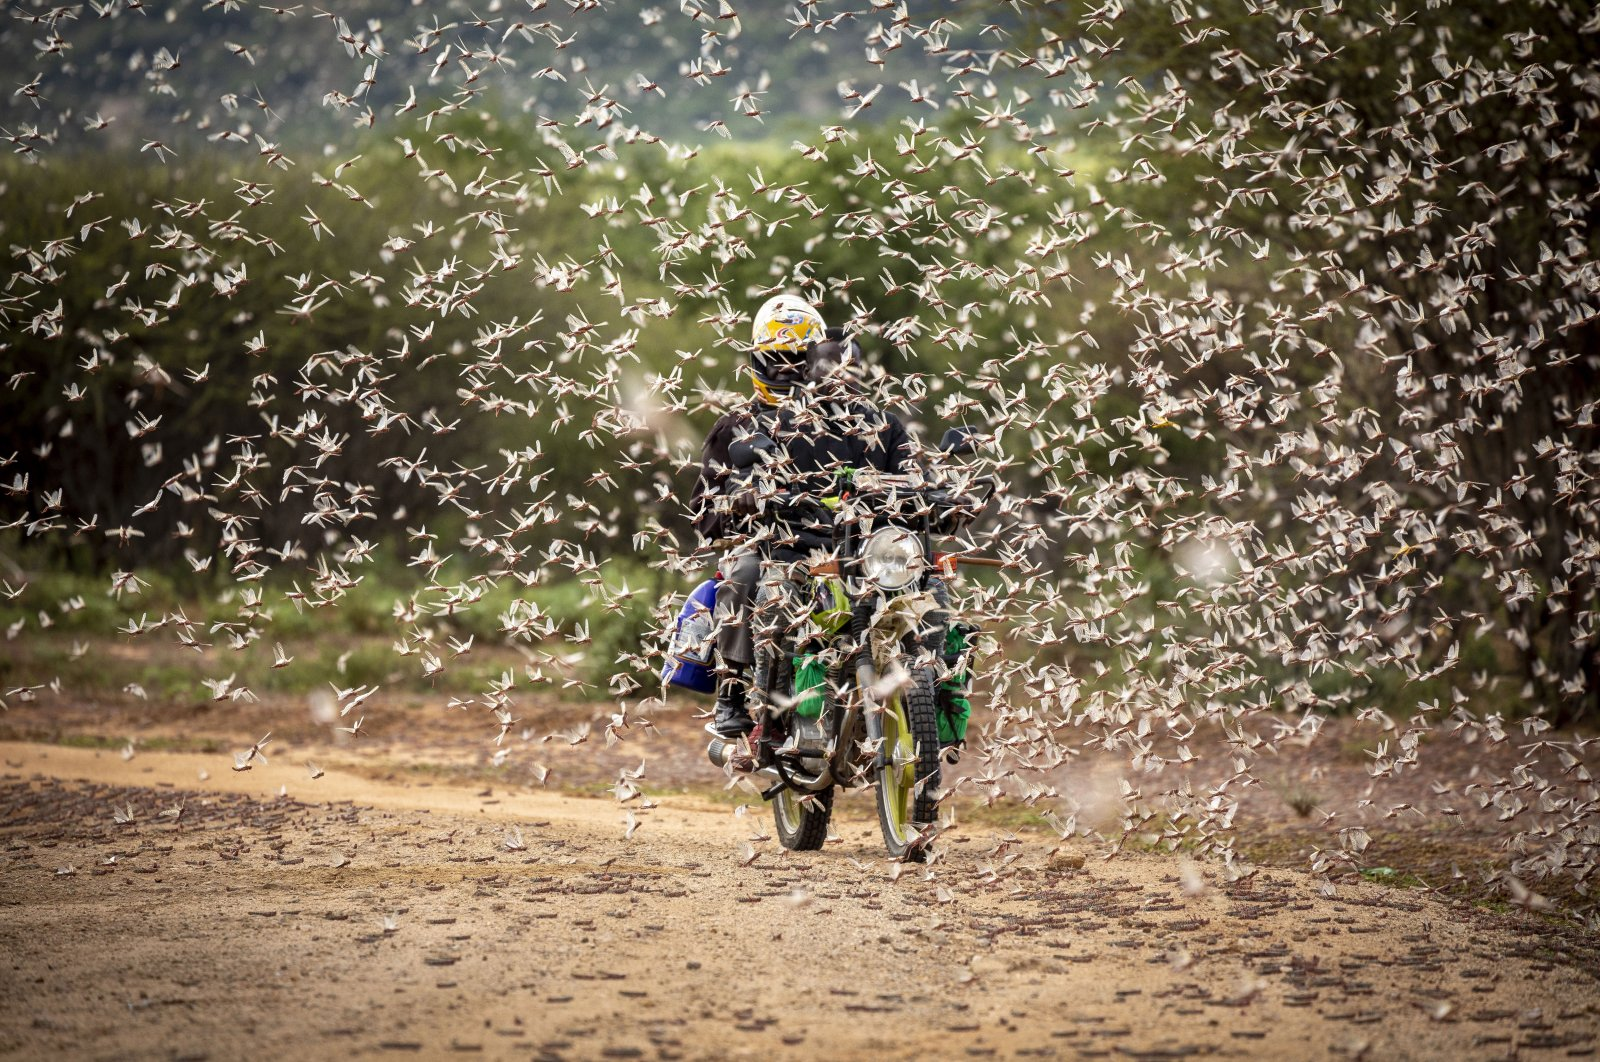 A motorcyclist rides through a swarm of desert locusts, Kipsing, Kenya, March 31, 2020. (AFP Photo)